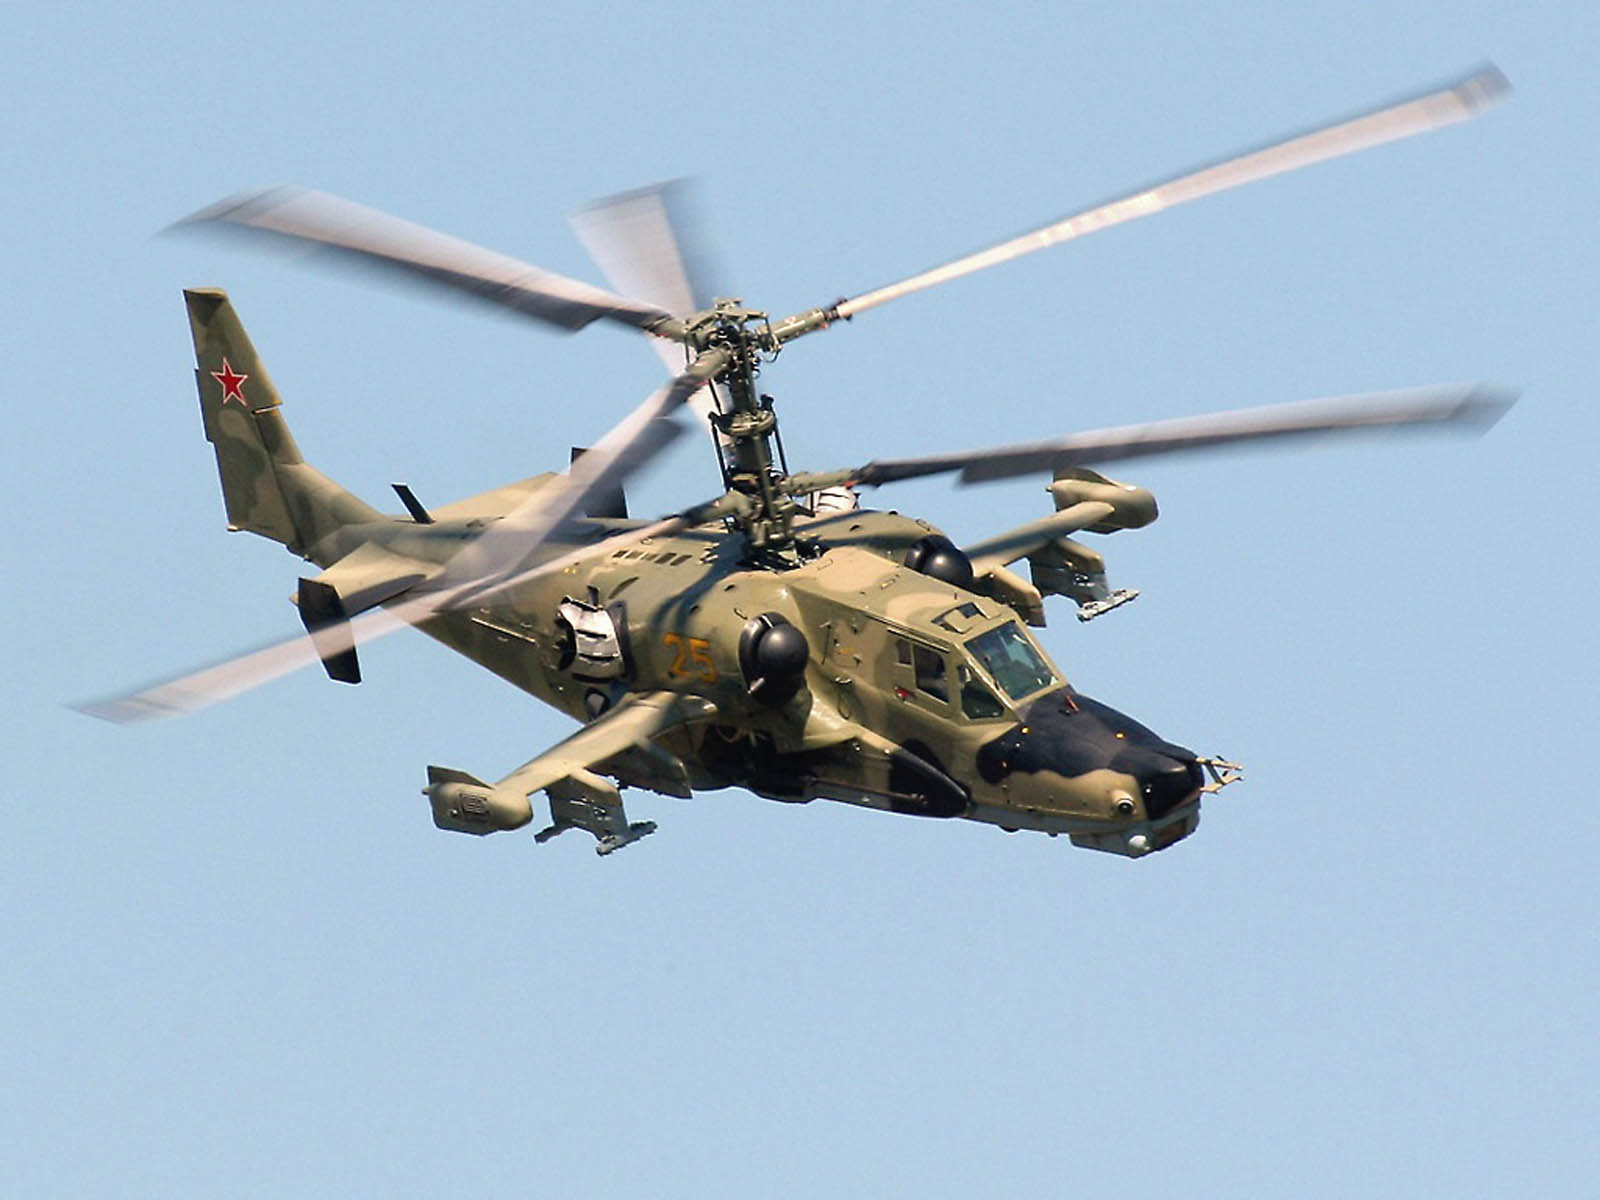 mi 28 helicopter with Military Helicopter Wallpapers on Military Helicopter Wallpapers besides File Mil Mi 28N  Russia   Air Force AN2102163 also 201505271022607861 likewise Watch moreover Russian Kamov Ka 52 Alligator Sees  bat Debut Syria.